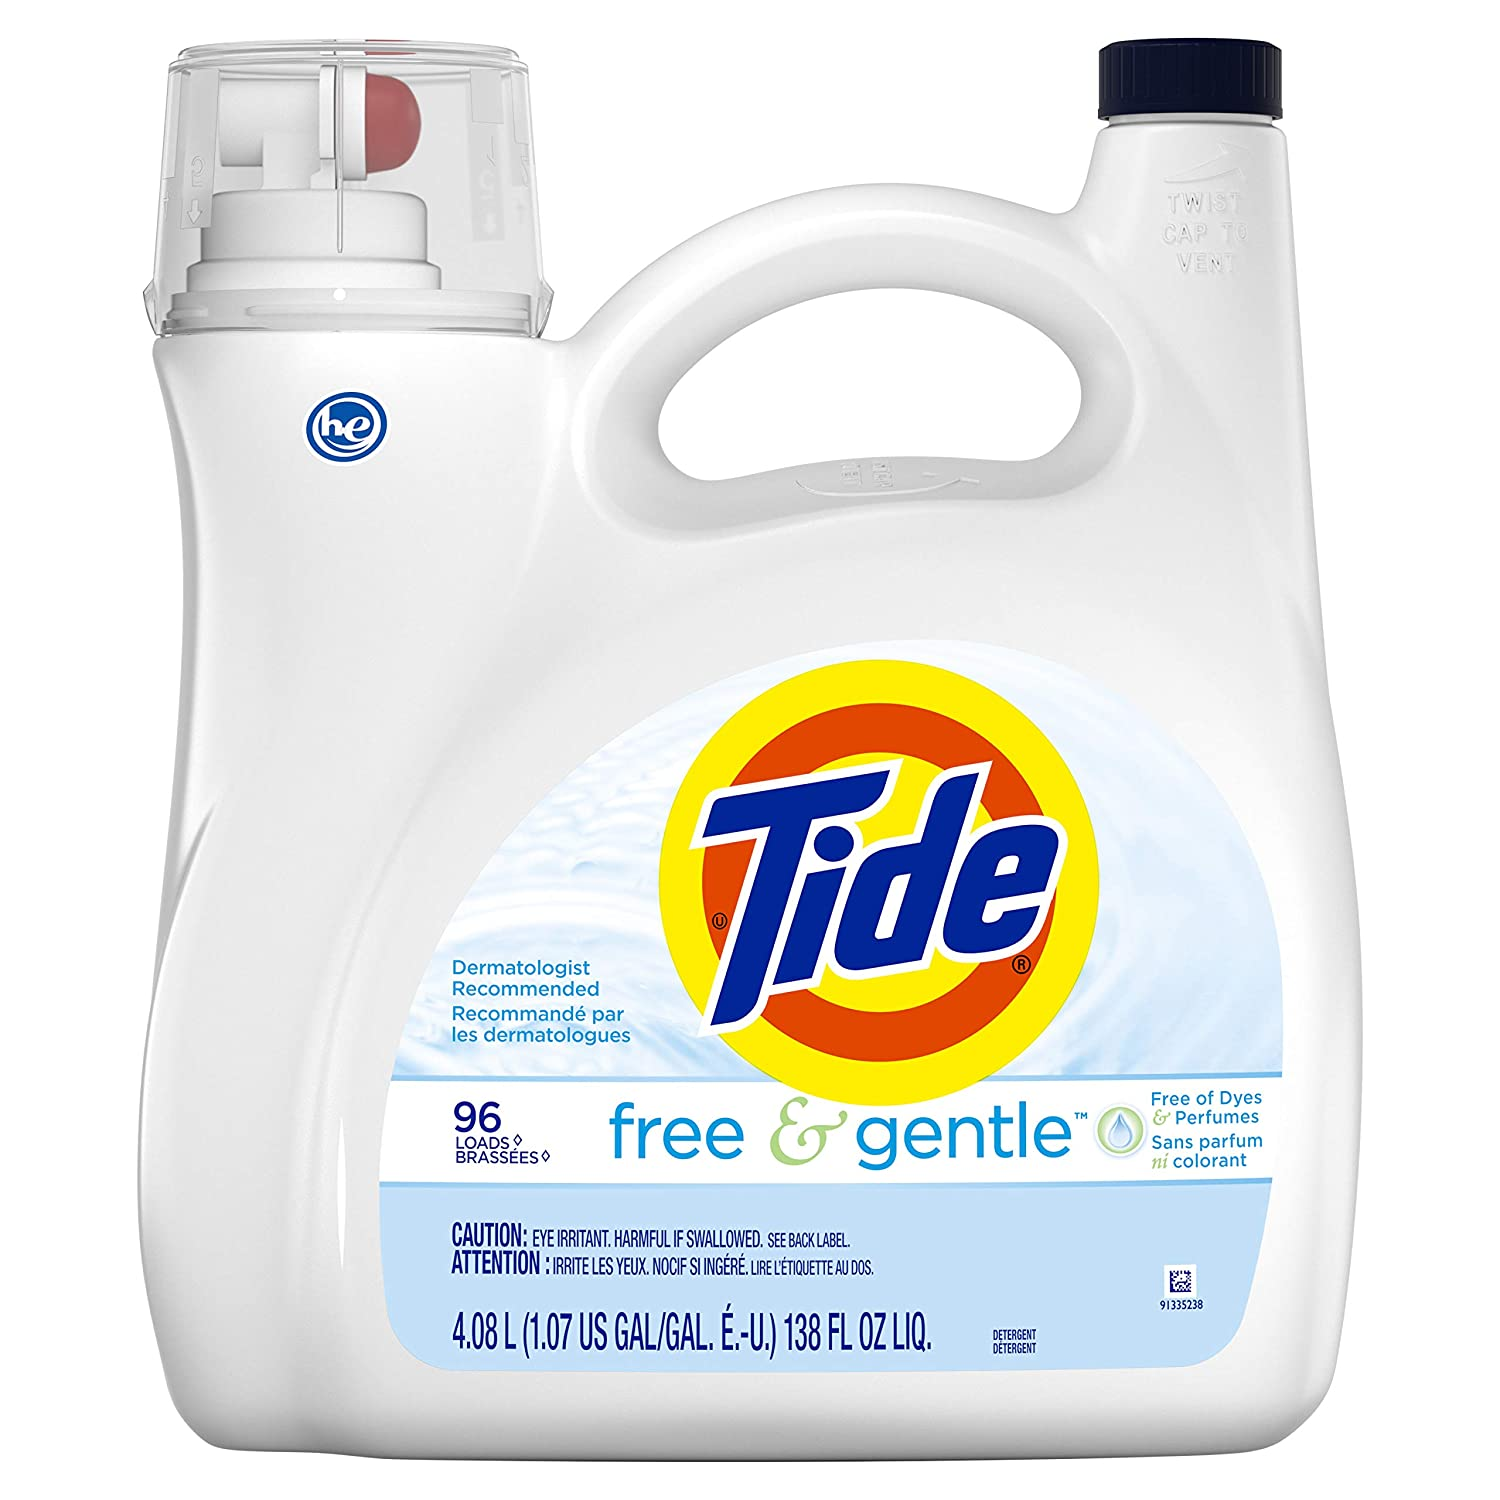 Tide Tide Free & Gentle Liquid Laundry Detergent, 96 Loads 138 fl oz, 138 Fl Oz